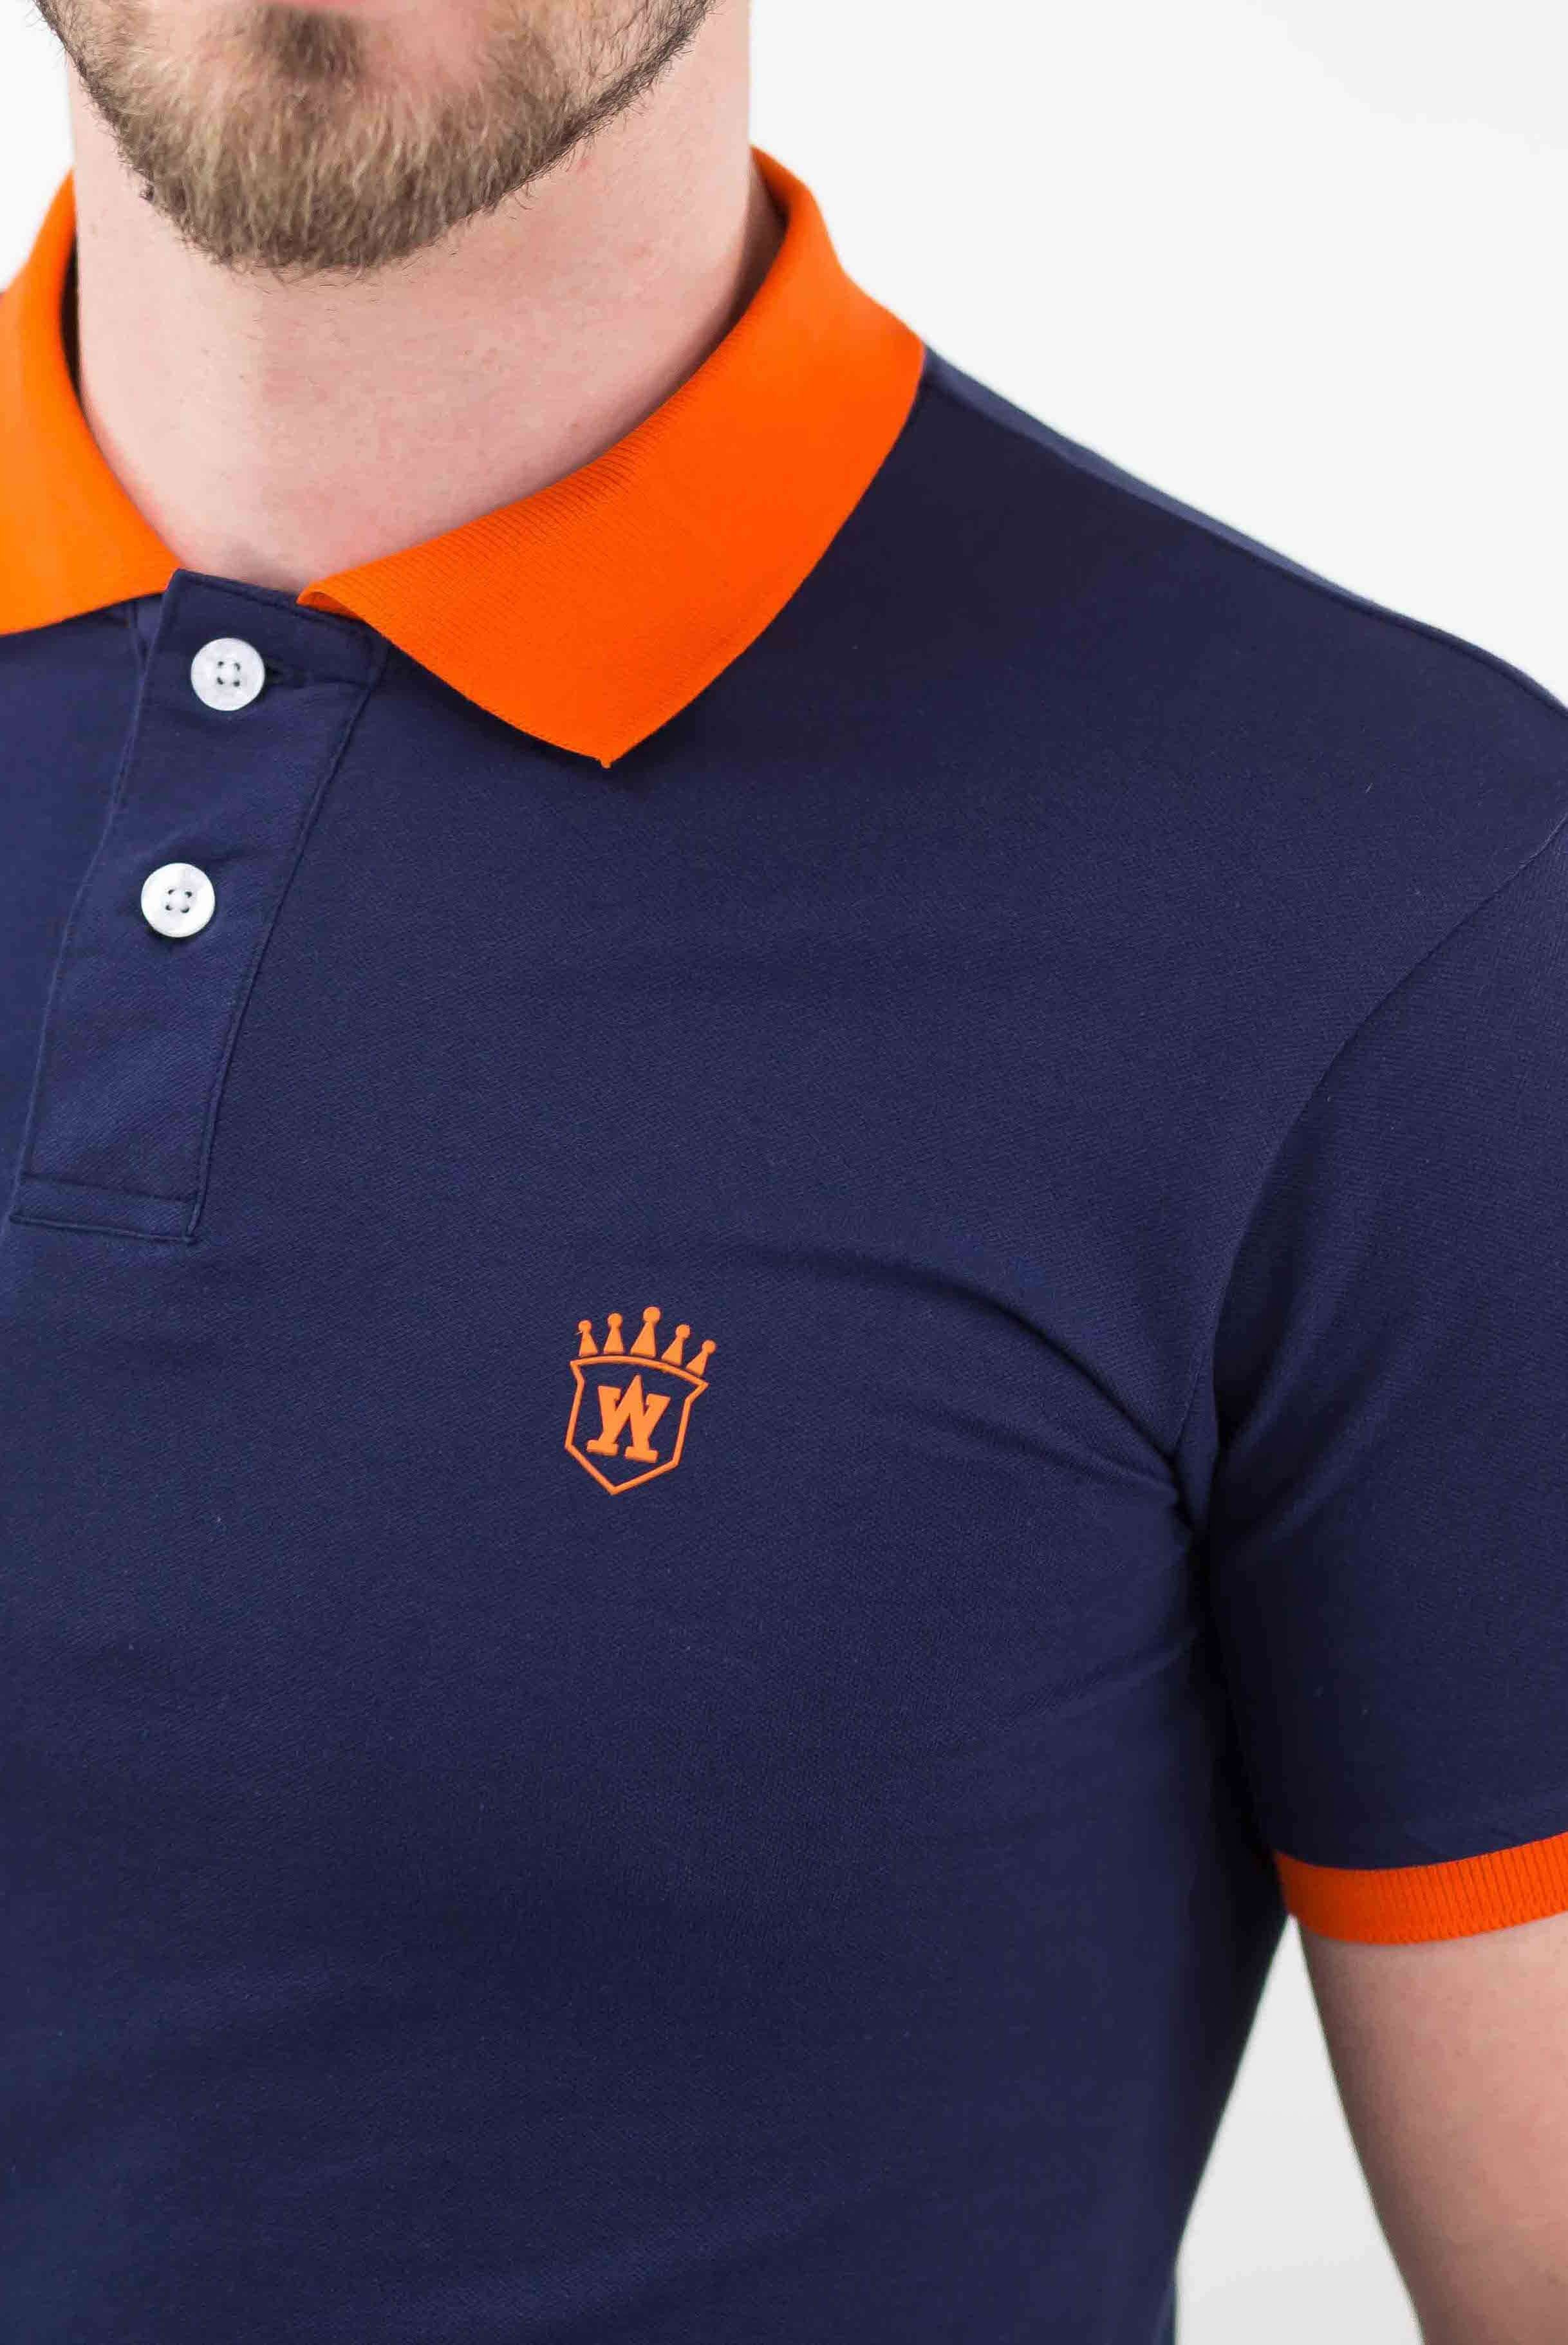 polo simple homme | Polo pour hommes, Mode